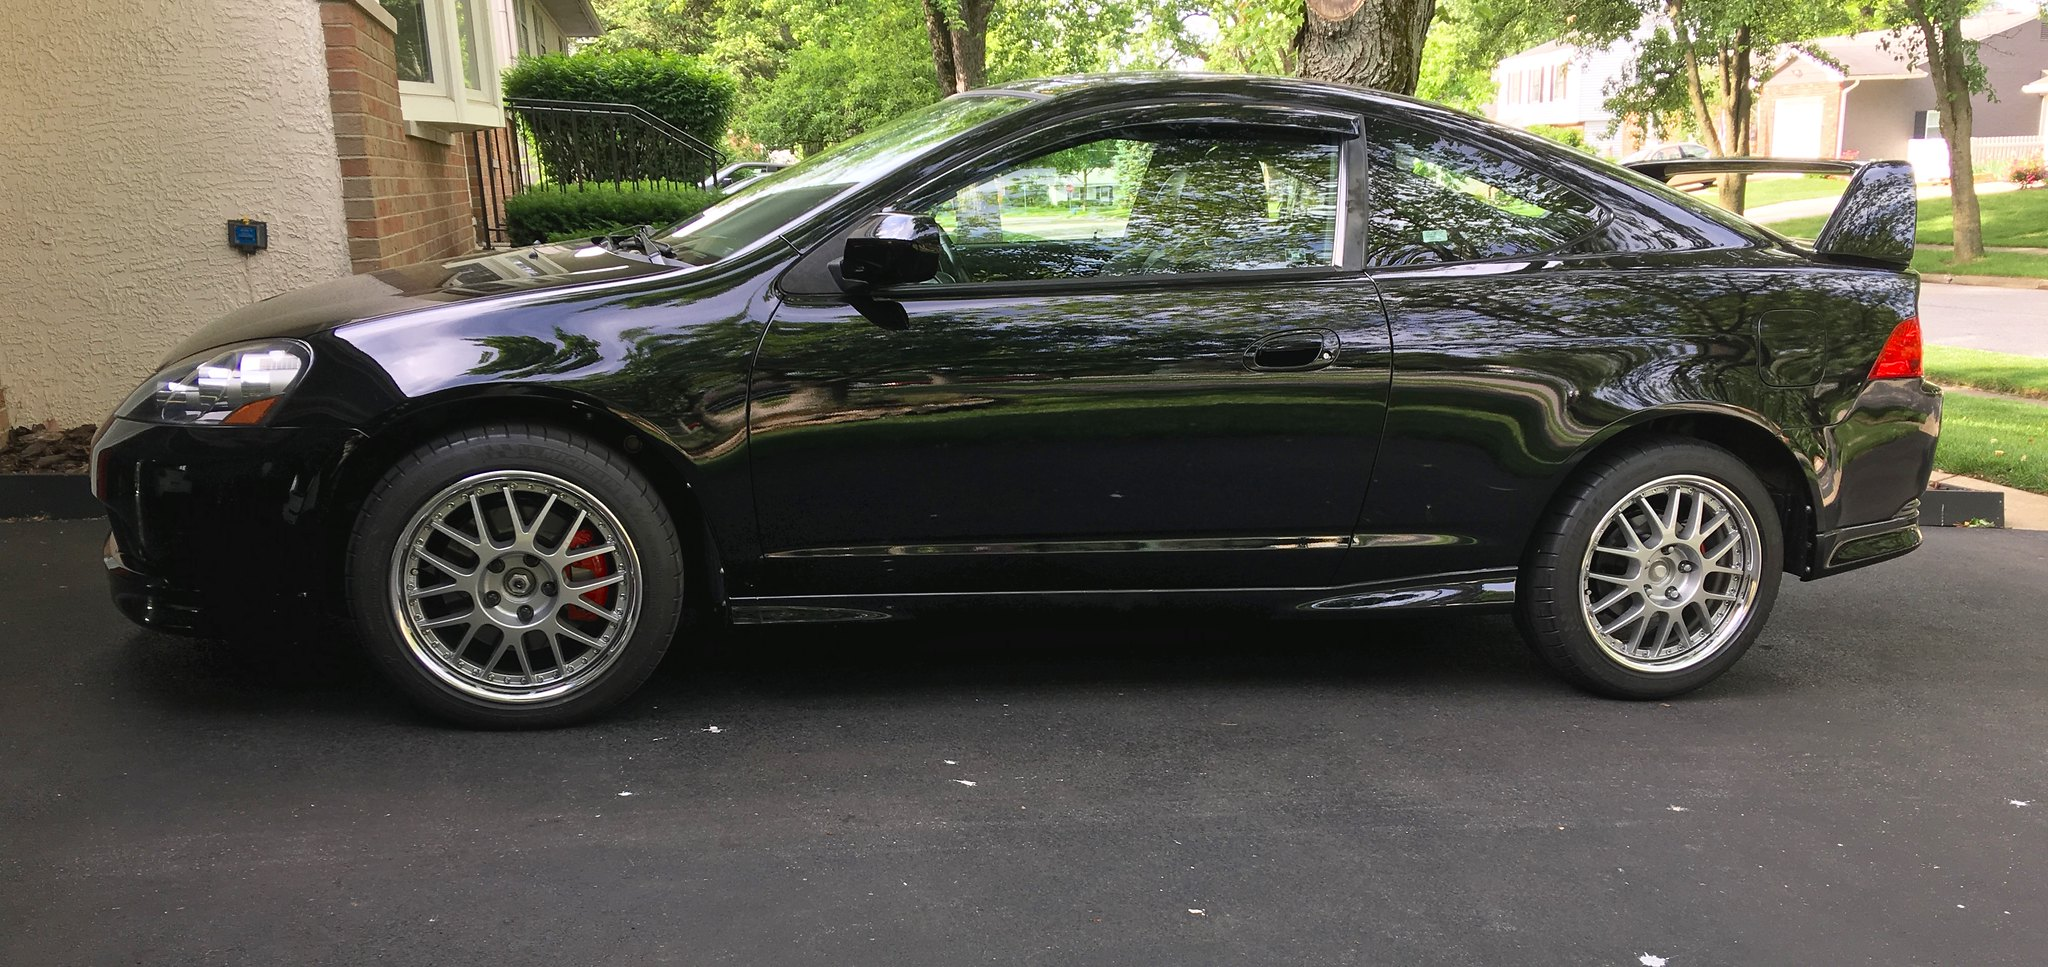 My 06 RSX S NHBP build and good bye Page 8 Club RSX Message Board